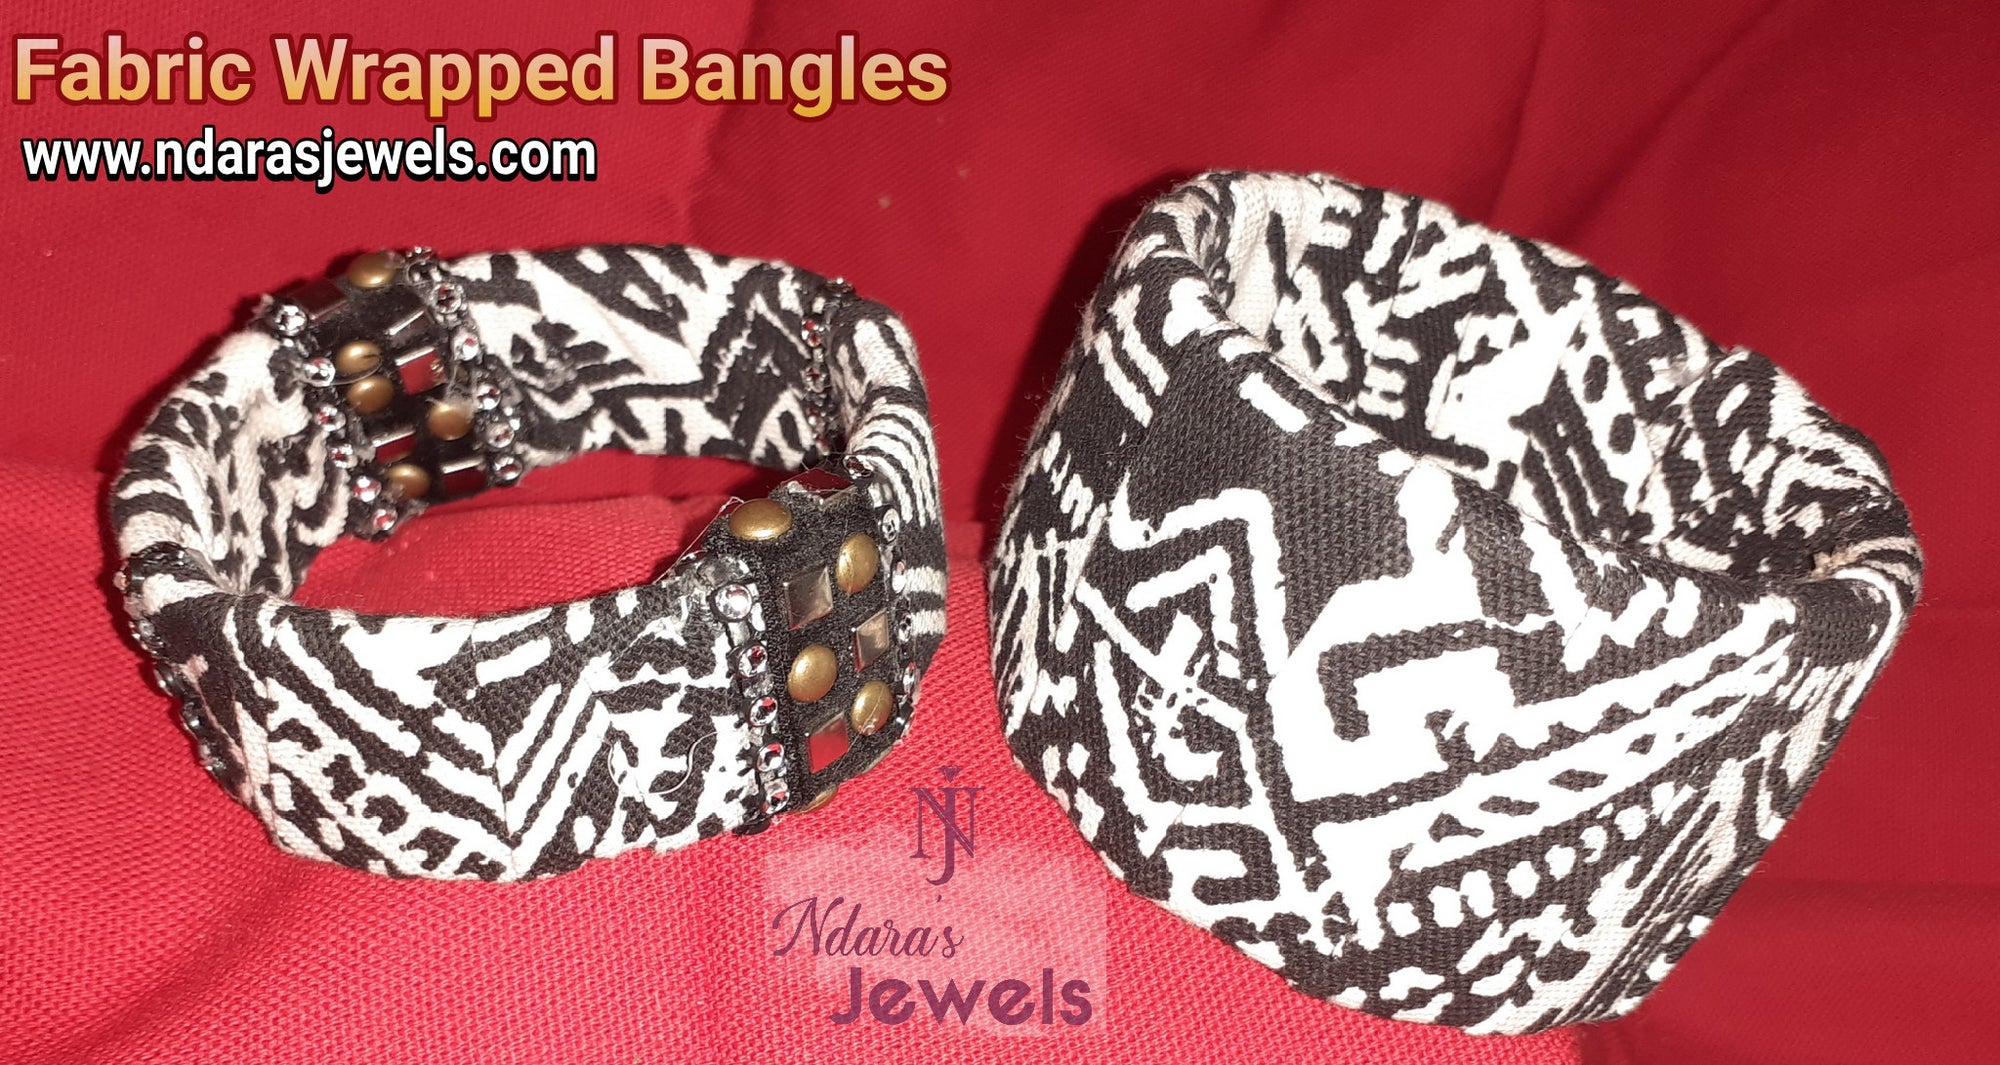 Fortitude Collection - Fabric Wrapped Bangles